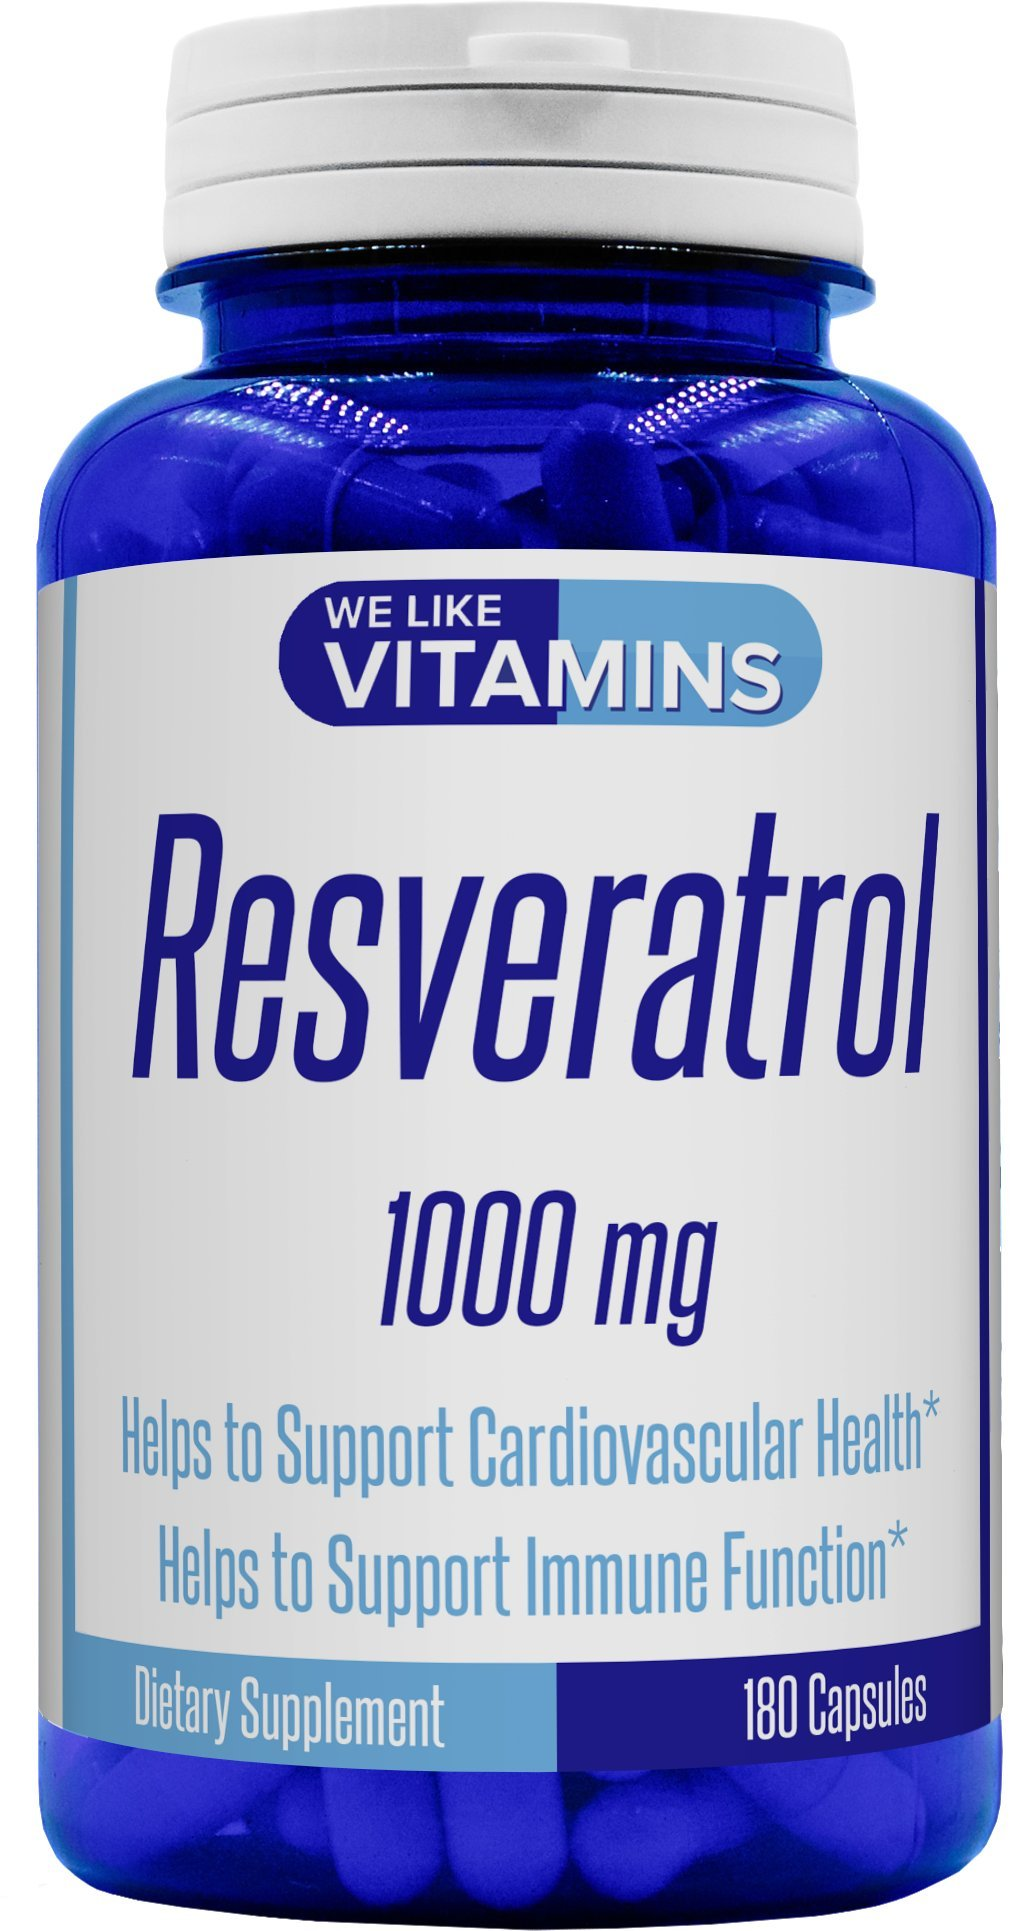 Resveratrol Capsules 1000mg Serving (Non GMO & Gluten Free) - 180 Capsules - Full 3 Month Supply - Antioxidant Trans Resveratrol Supplement Helps Support Anit-Aging and Cardiovascular System by We Like Vitamins